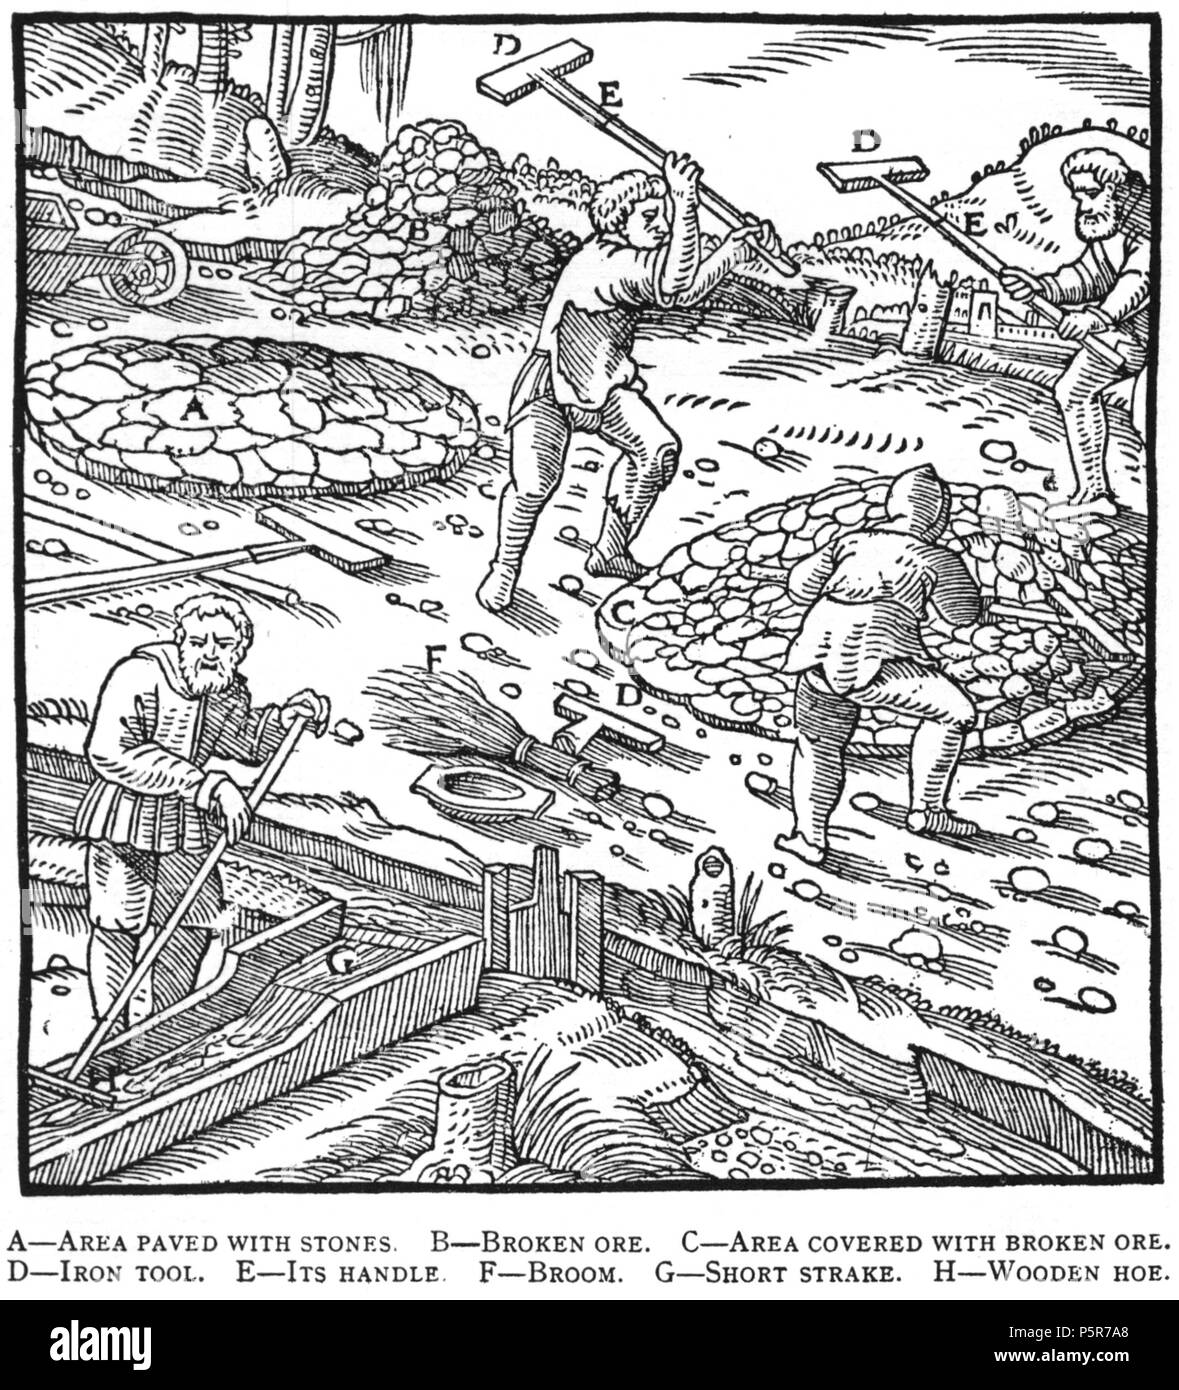 N/A. Woodcut illustration from De re metallica by Georgius Agricola. This is a 300dpi scan from the 1950 Dover edition of the 1913 Hoover translation of the 1556 reference. The Dover edition has slightly smaller size prints than the Hoover (which is a rare book). The woodcuts were recreated for the 1913 printing. Filenames (except for the title page) indicate the chapter (2, 3, 5, etc.) followed by the sequential number of the illustration. 2 May 2005, 07:13:24. TCO (talk) 223 Book8-5 - Stock Image